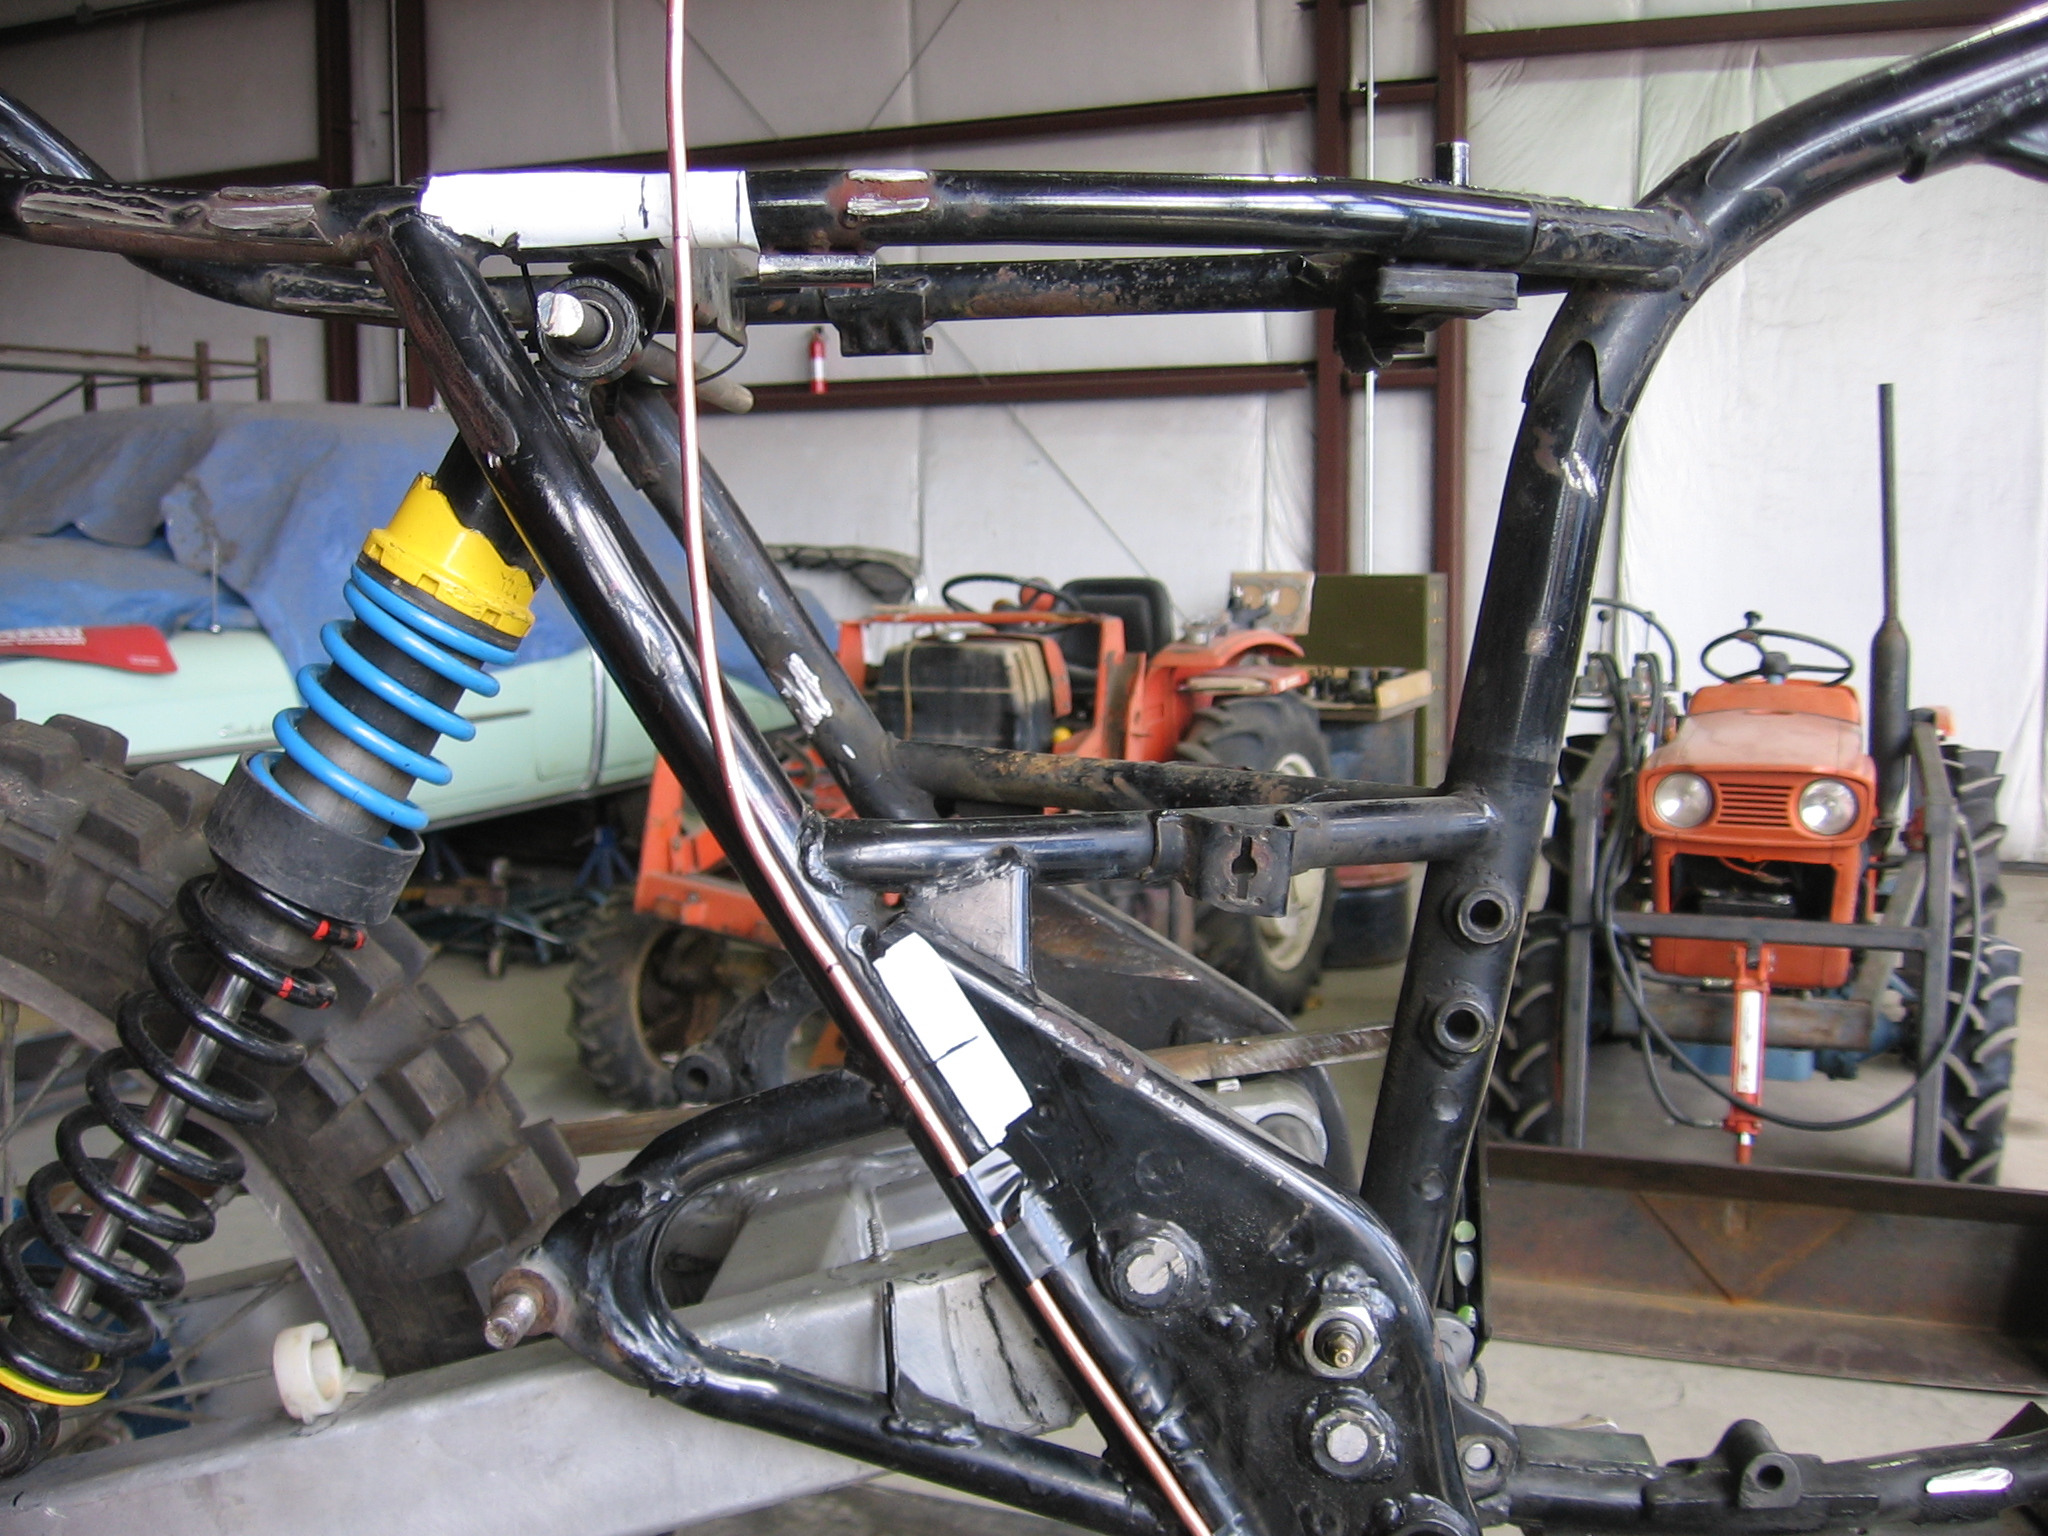 Kestrel Design Alpinas Gss Projects Xs Xs650 Wiring Harness Routing New Subframe Template